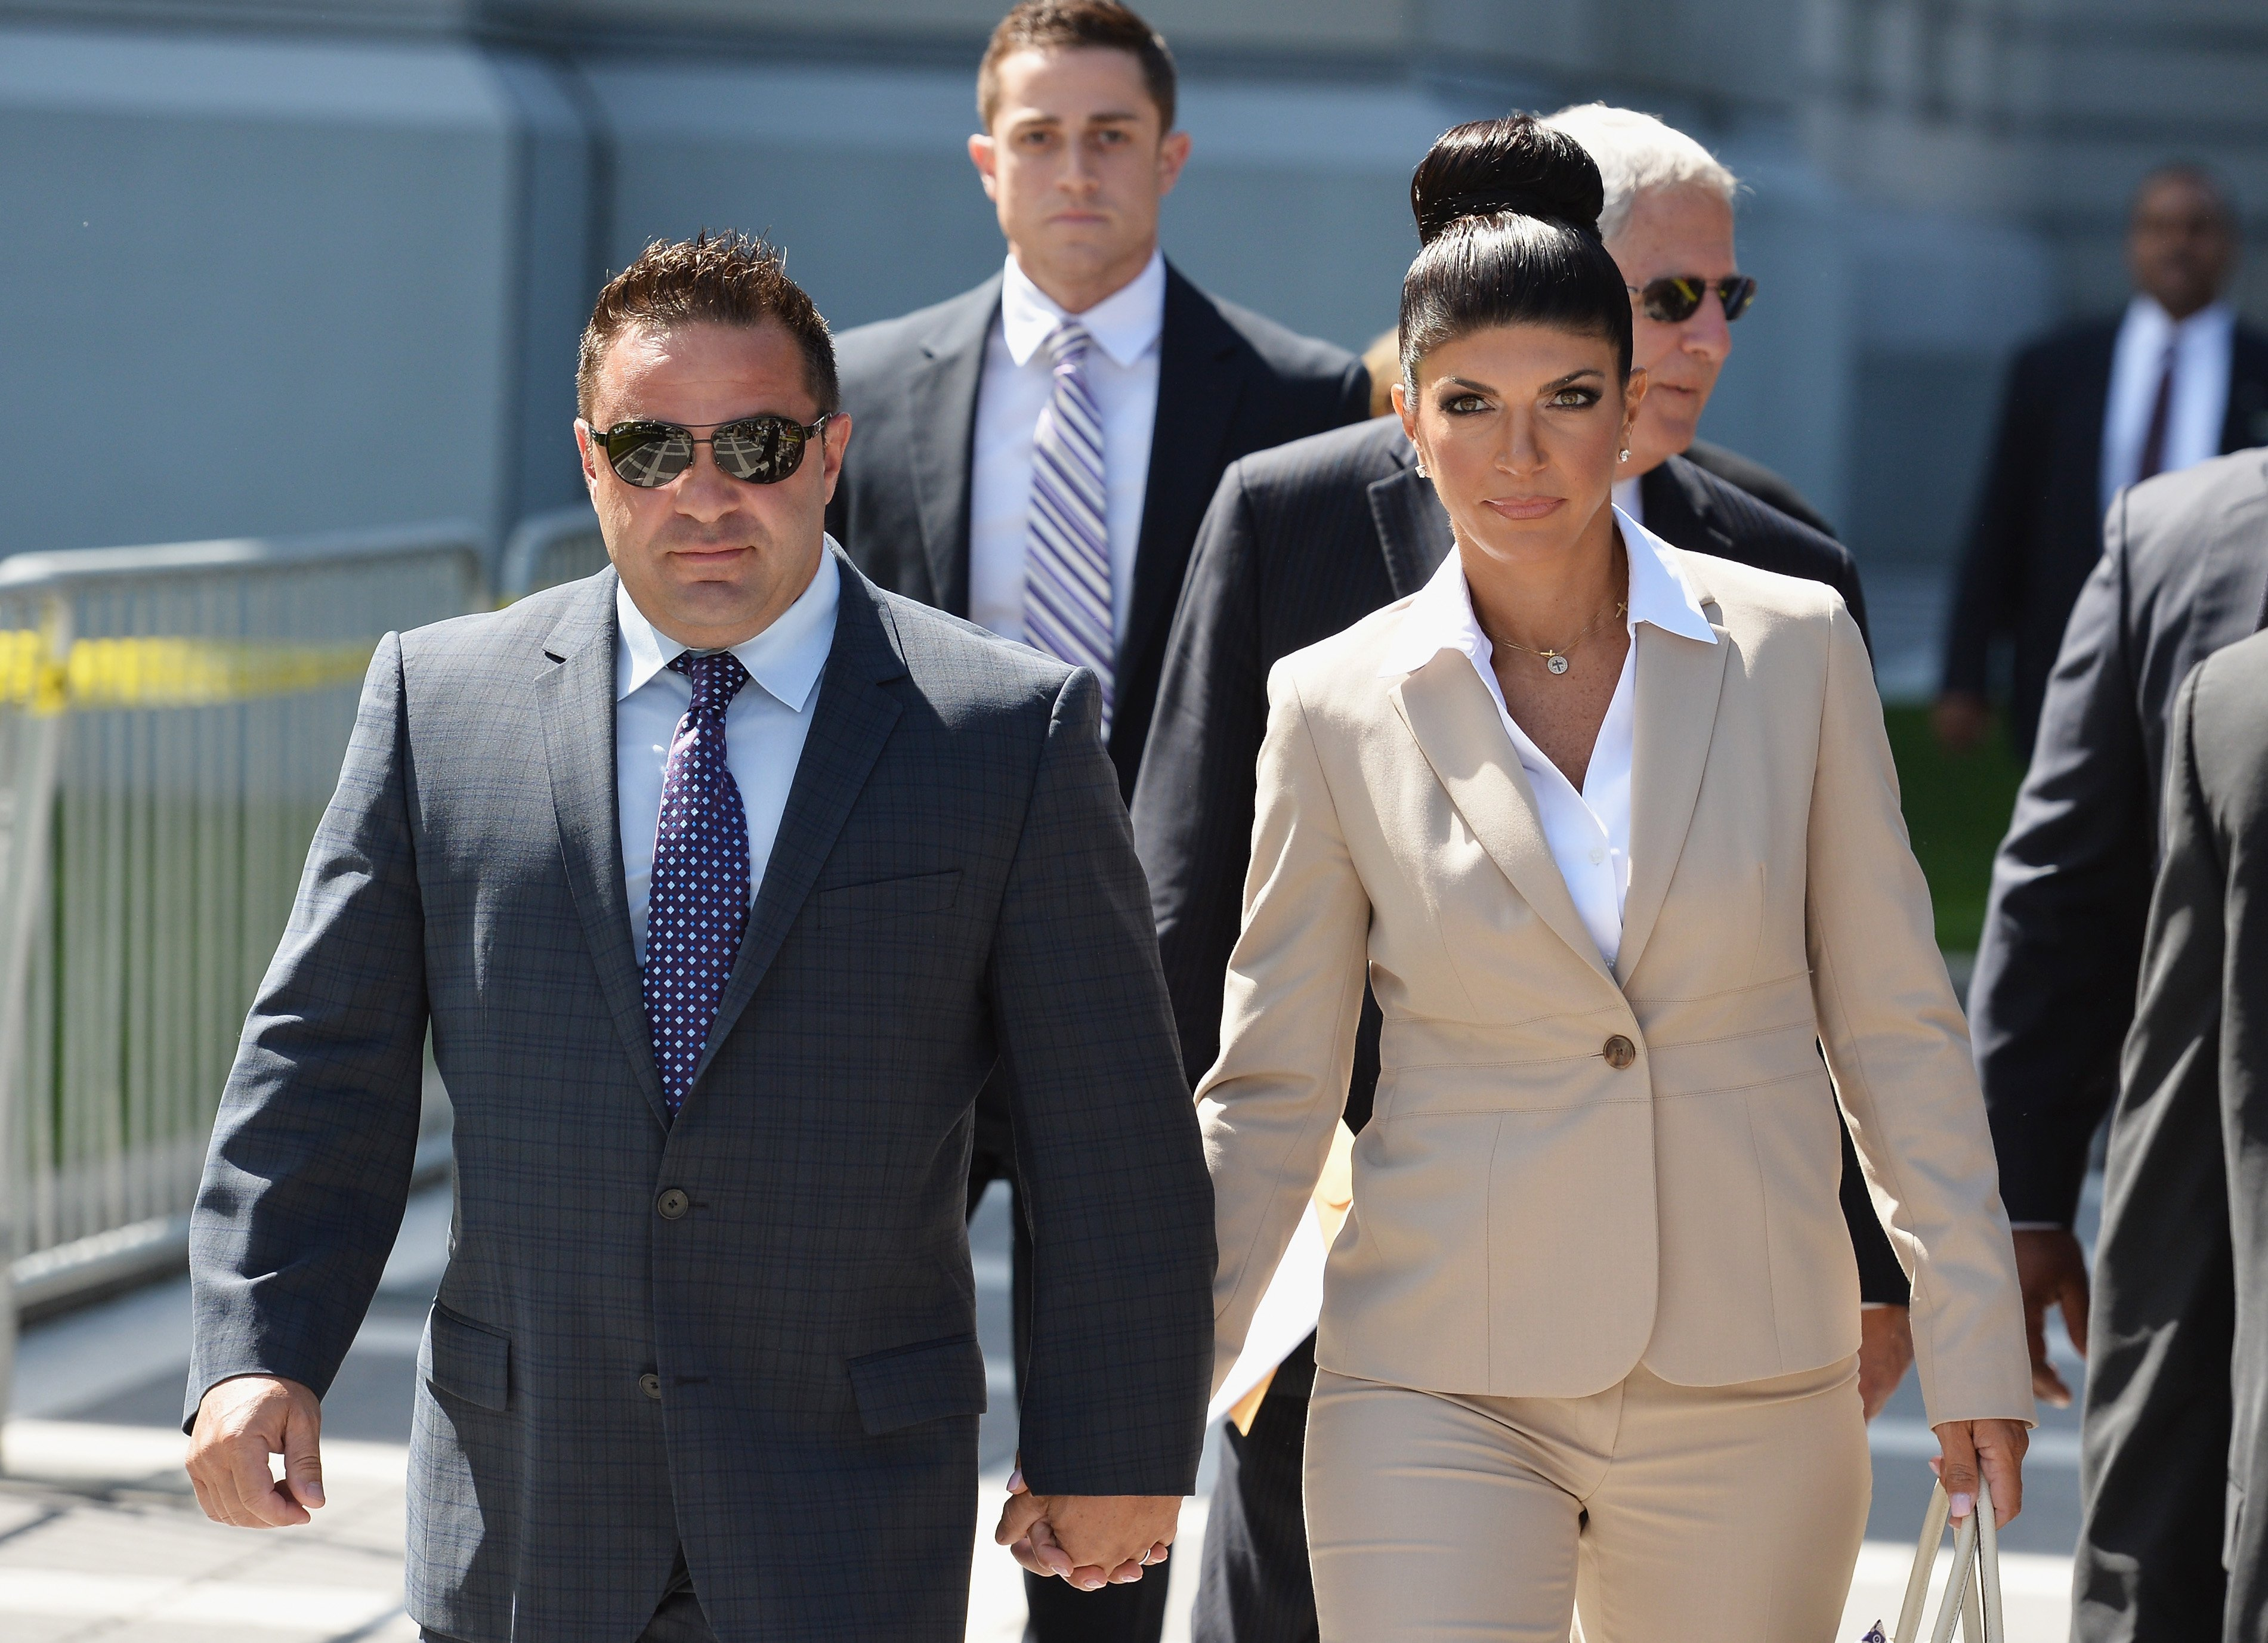 Joe Giudice  and wife Teresa Giudice leave court during a bankruptcy case on August 14, 2013. | Source: Getty Images